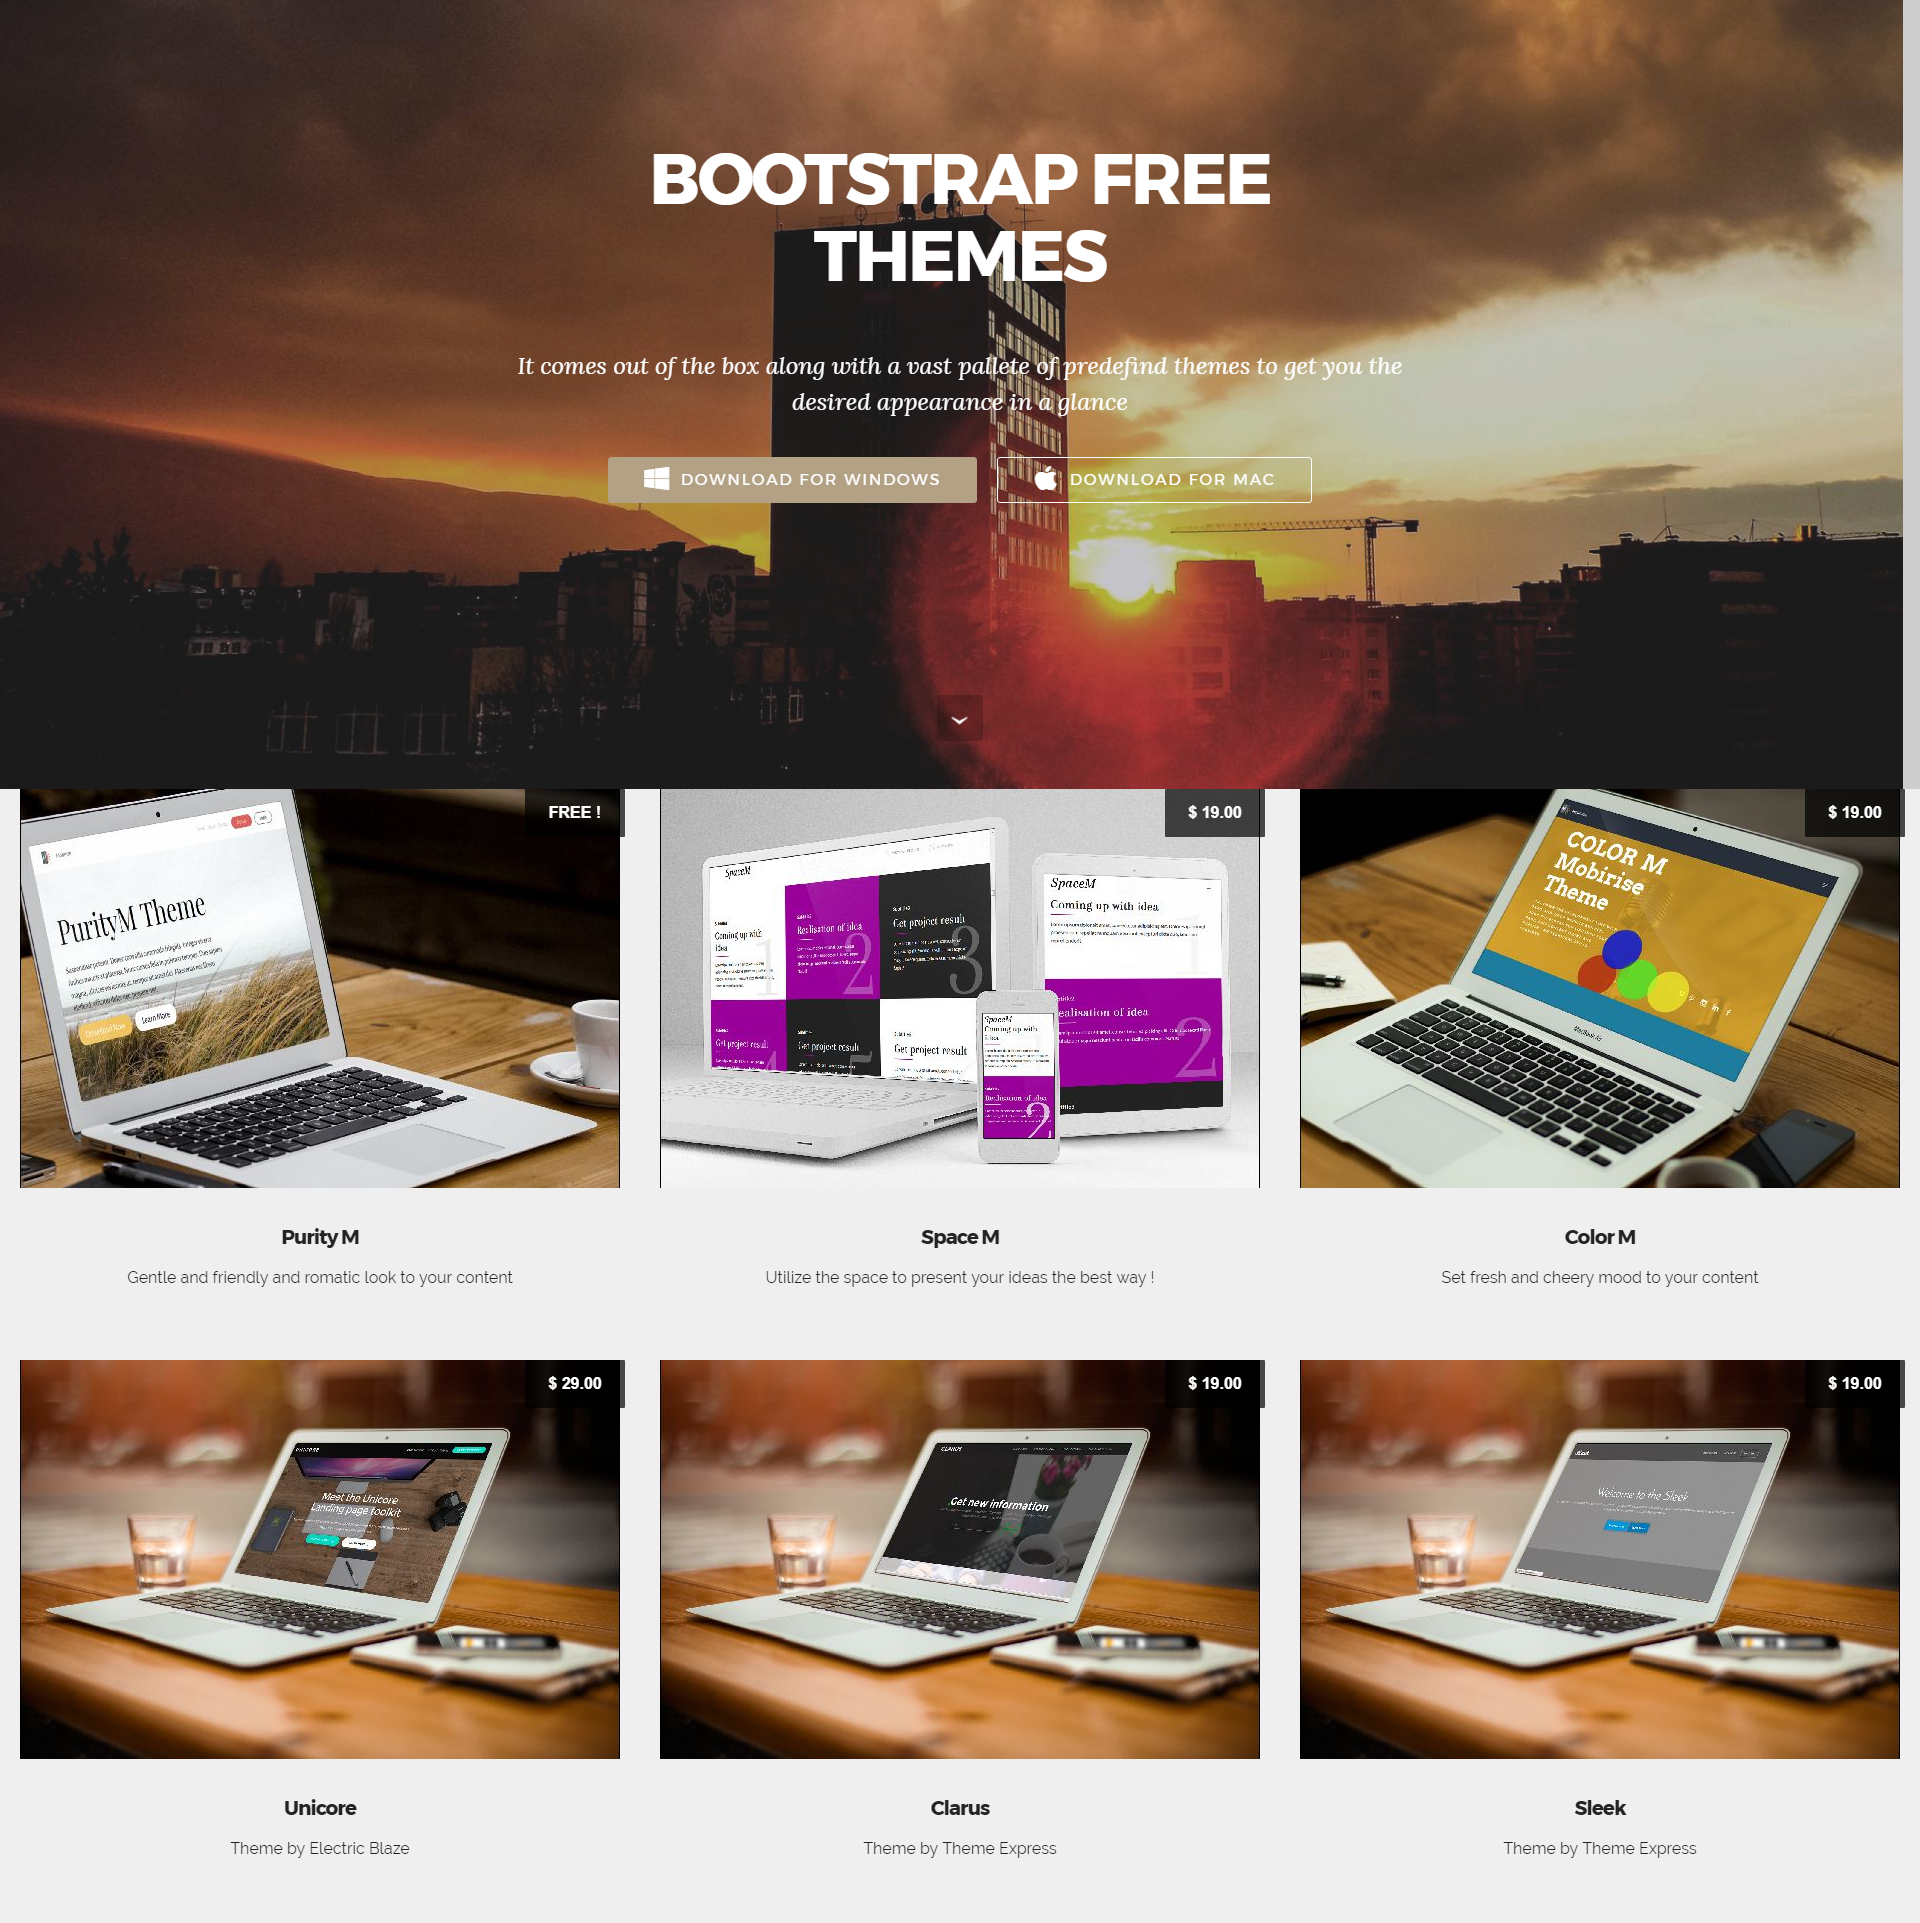 HTML5 Bootstrap Mobile-friendly Templates